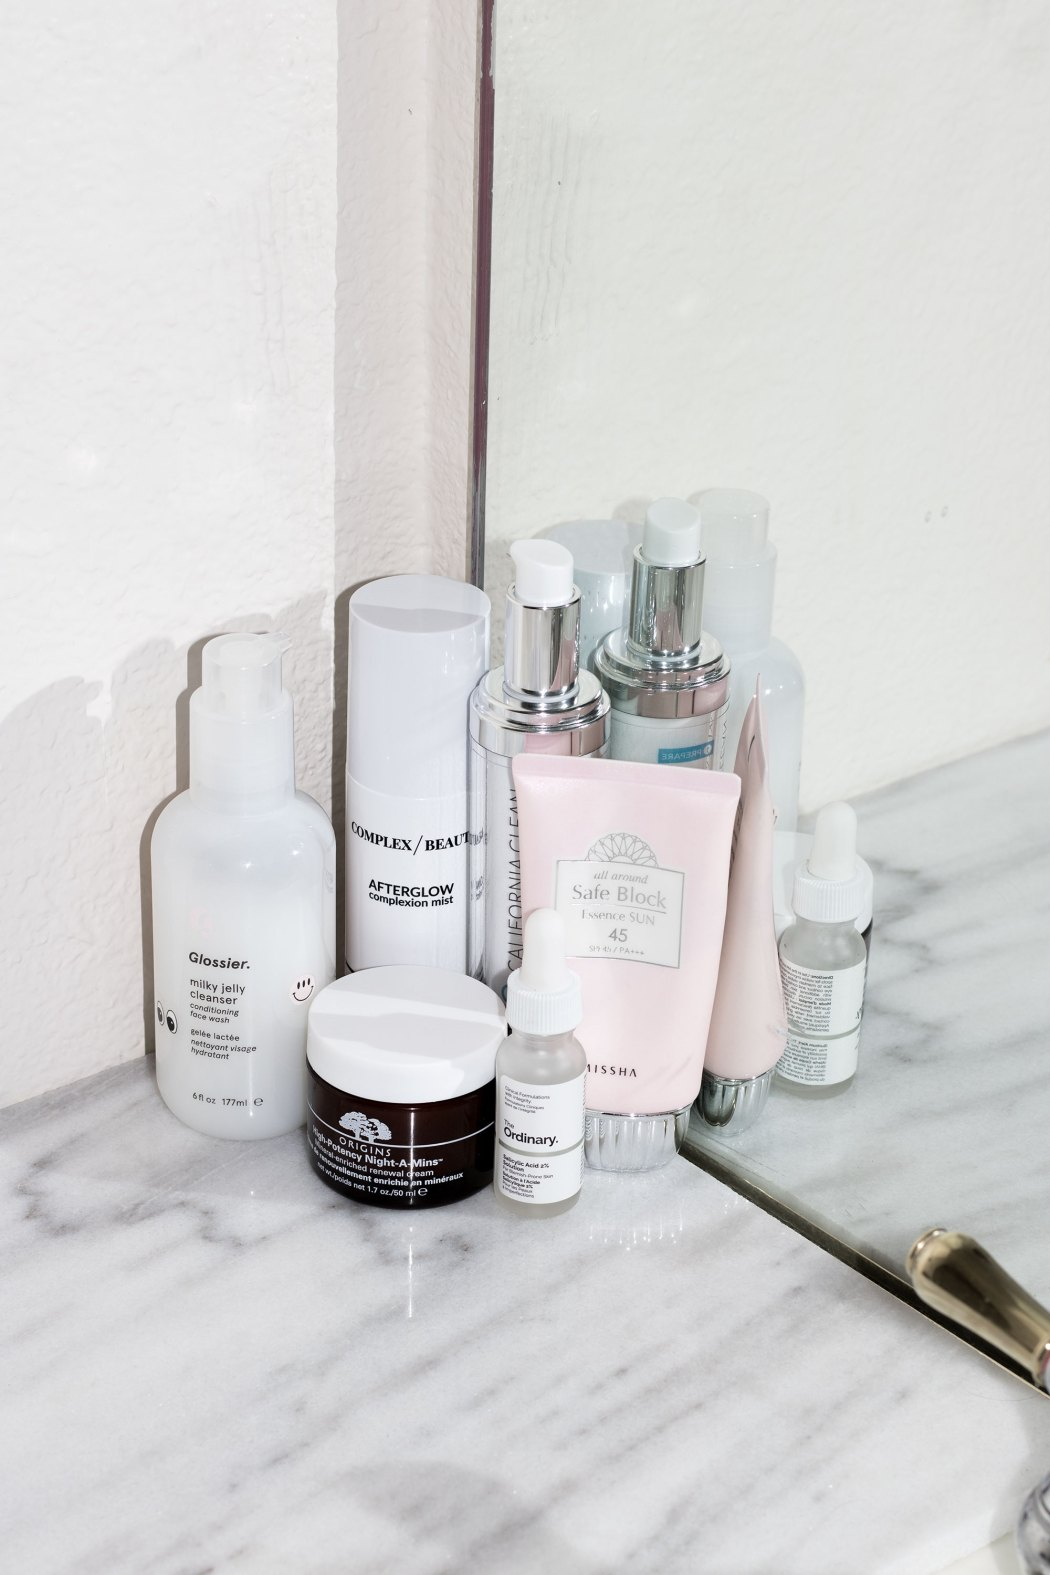 Travel beauty essentials Glossier Milky Jelly cleanser, burberry fresh glow base nude radiance, missha spf pink tube, origins night a mins, skincare, becca opal, butter london eye glaze, glossier cloud paint dusk